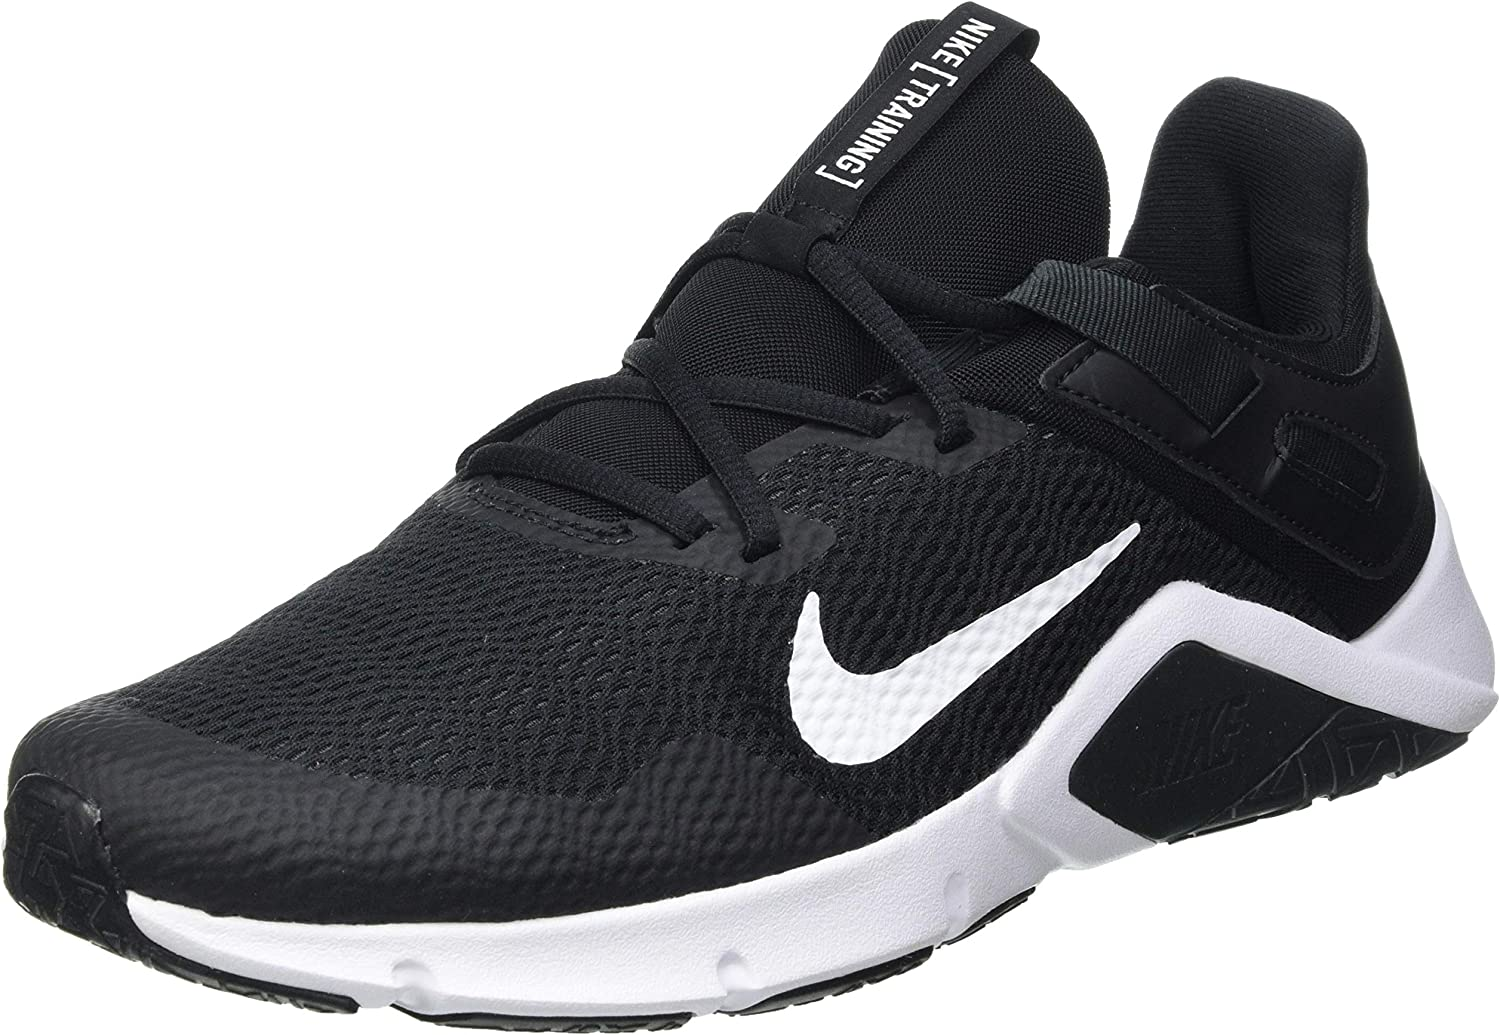 Nike Men's Low-top Sneakers Fitness and Exercise Man